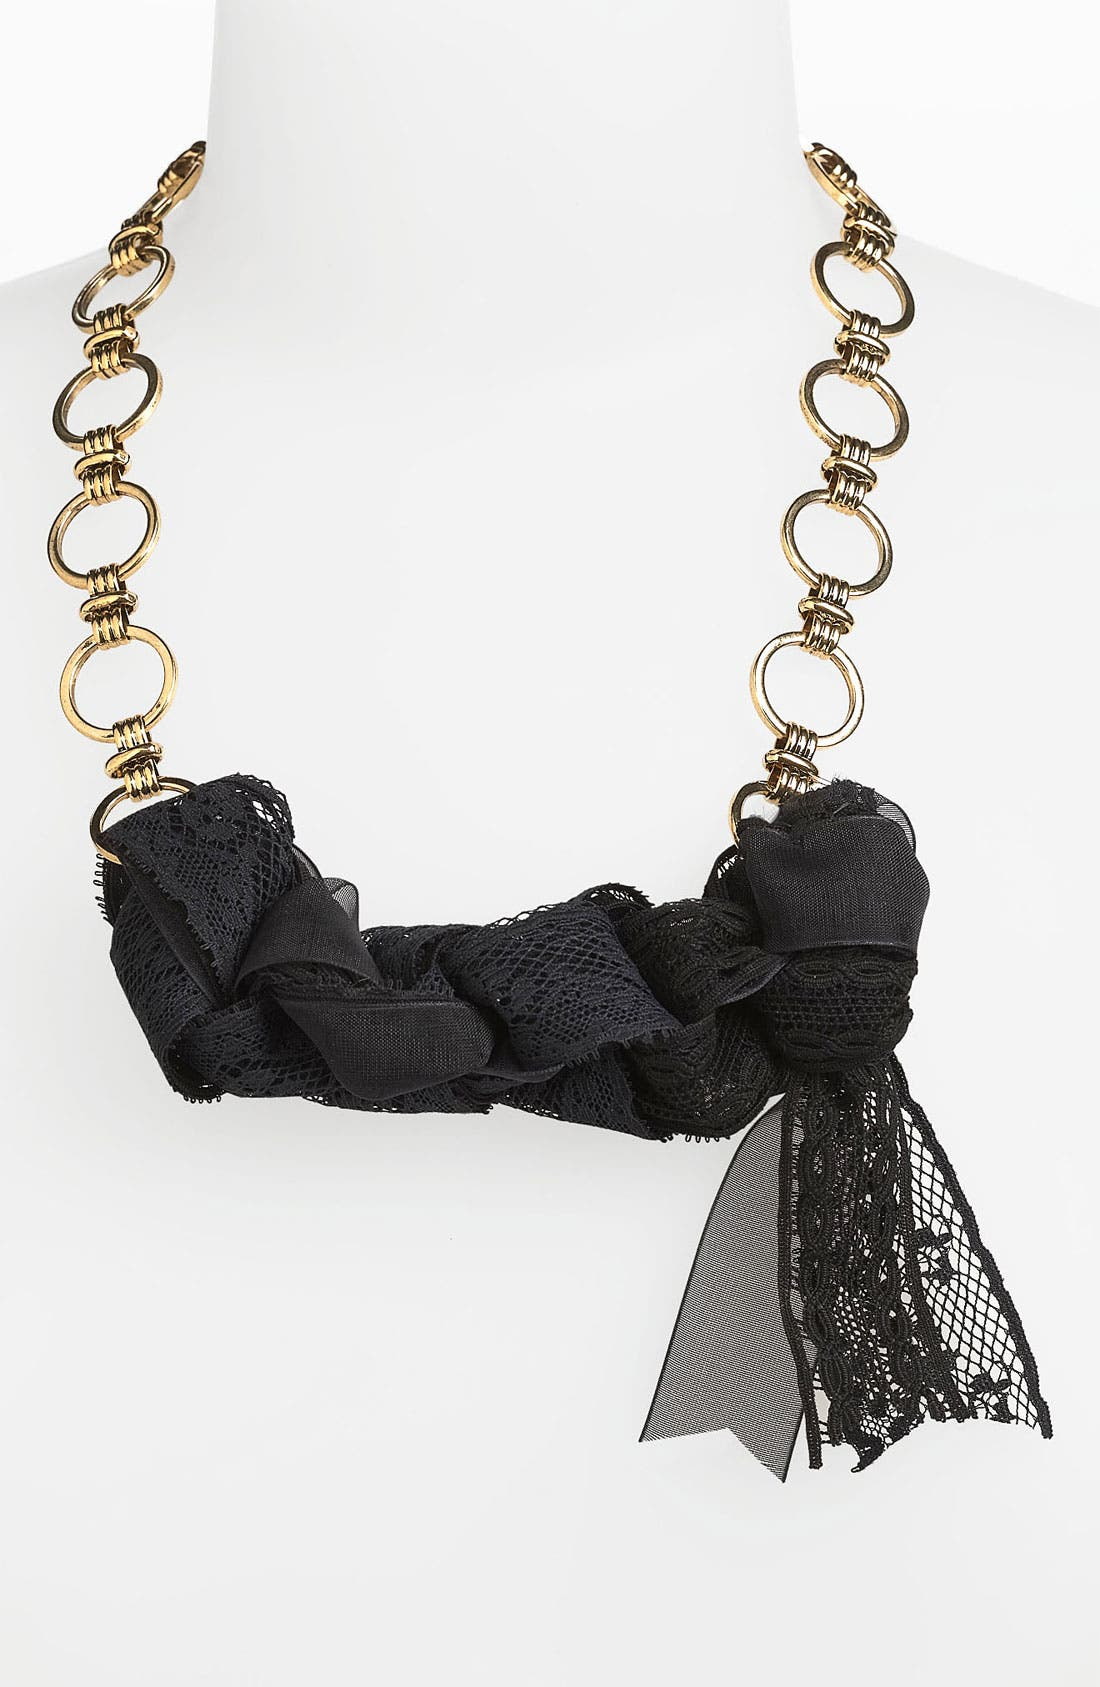 Alternate Image 1 Selected - Bonnie Jonas 'Lace & Chain' Necklace